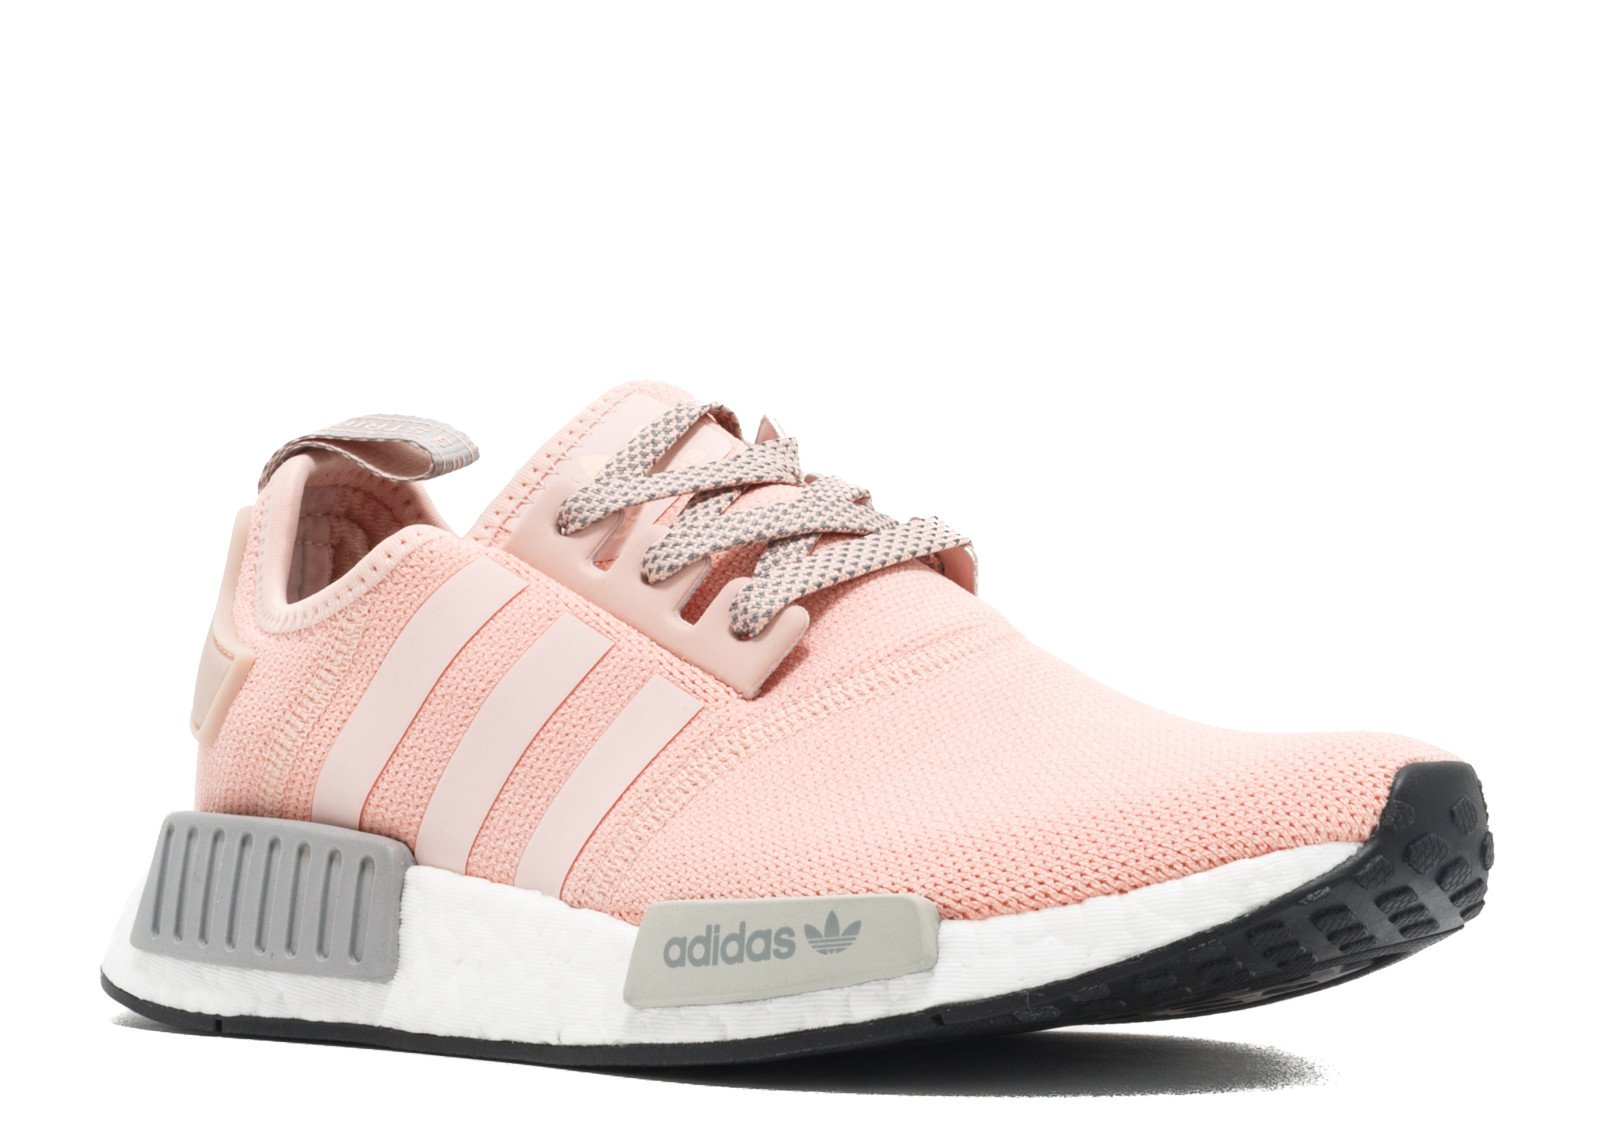 5314cdd60 Galleon - Adidas NMD R1 Womens Offspring BY3059 Vapour Pink Light Onix Sz8  Us